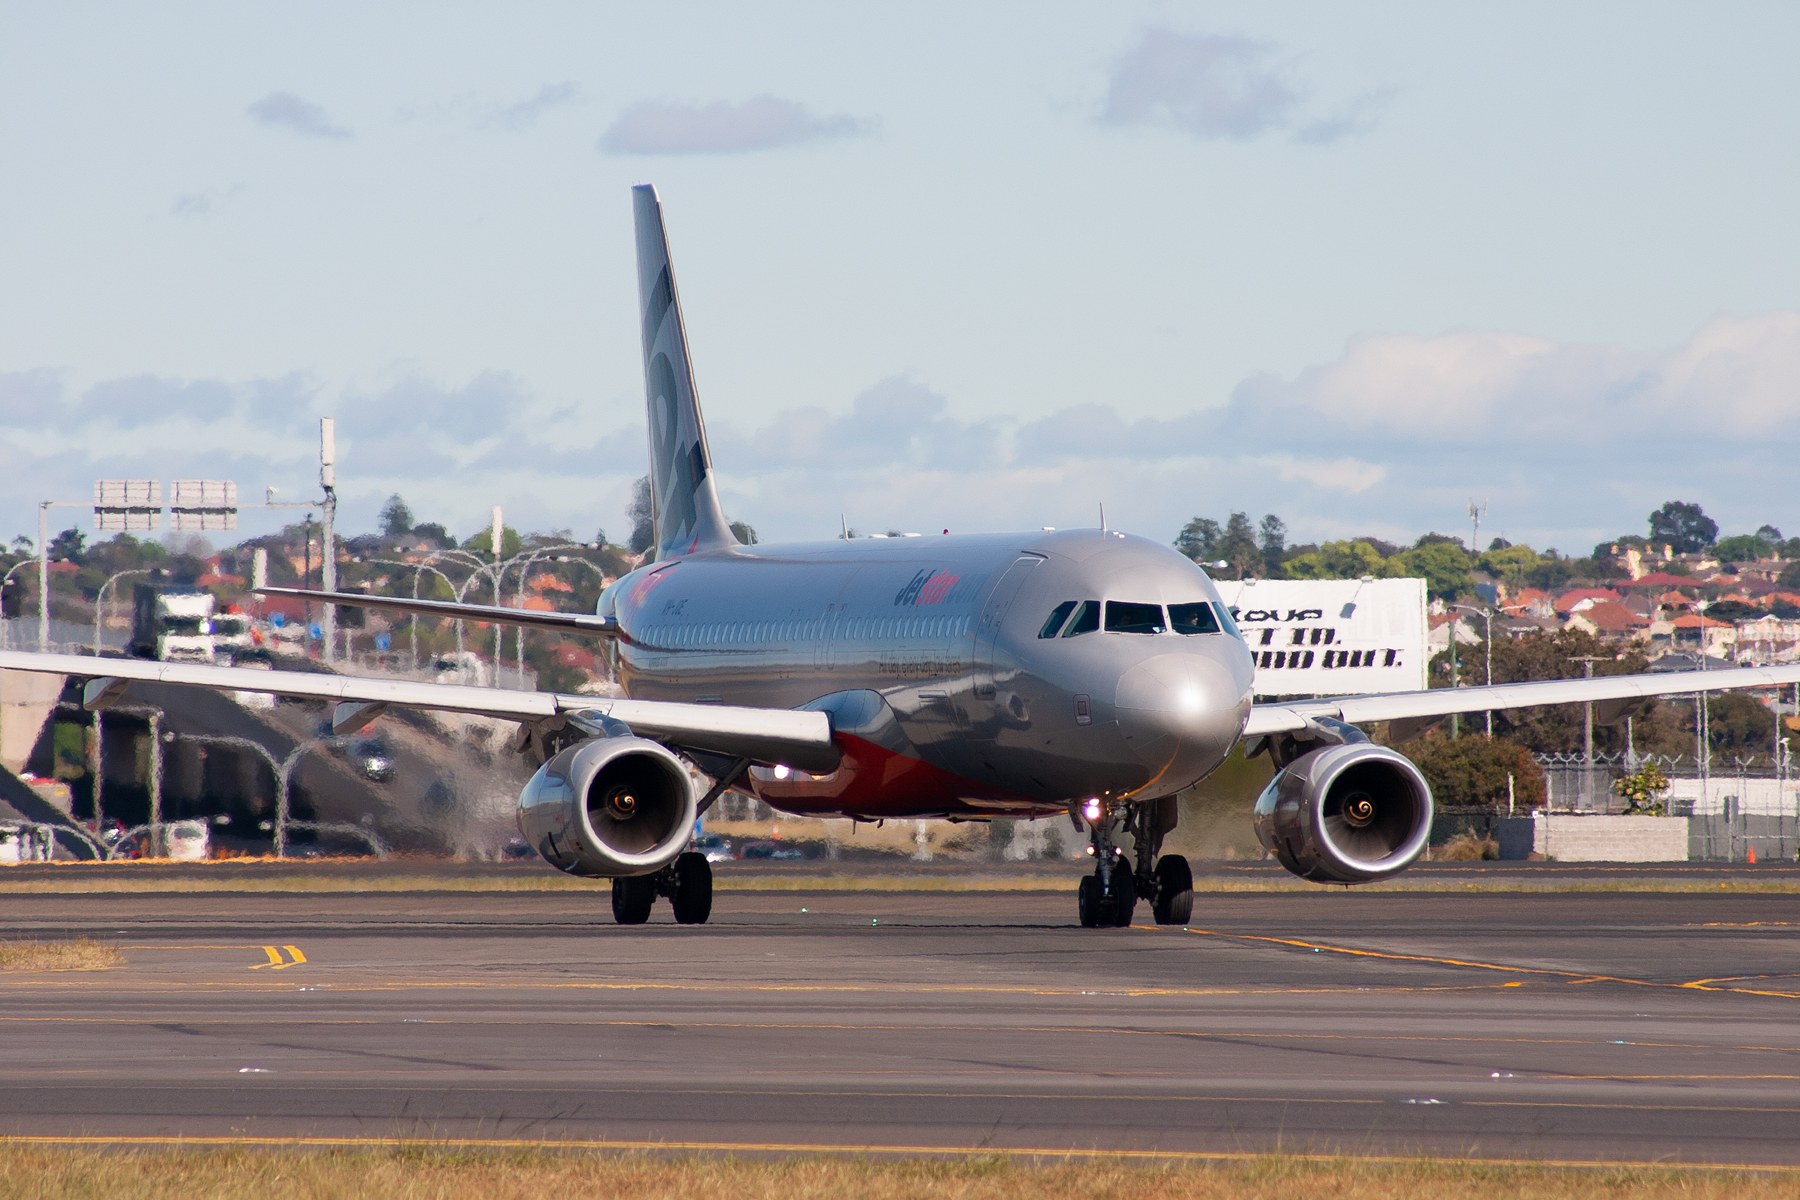 Jetstar Airways Airbus A320-200 VH-JQE at Kingsford Smith